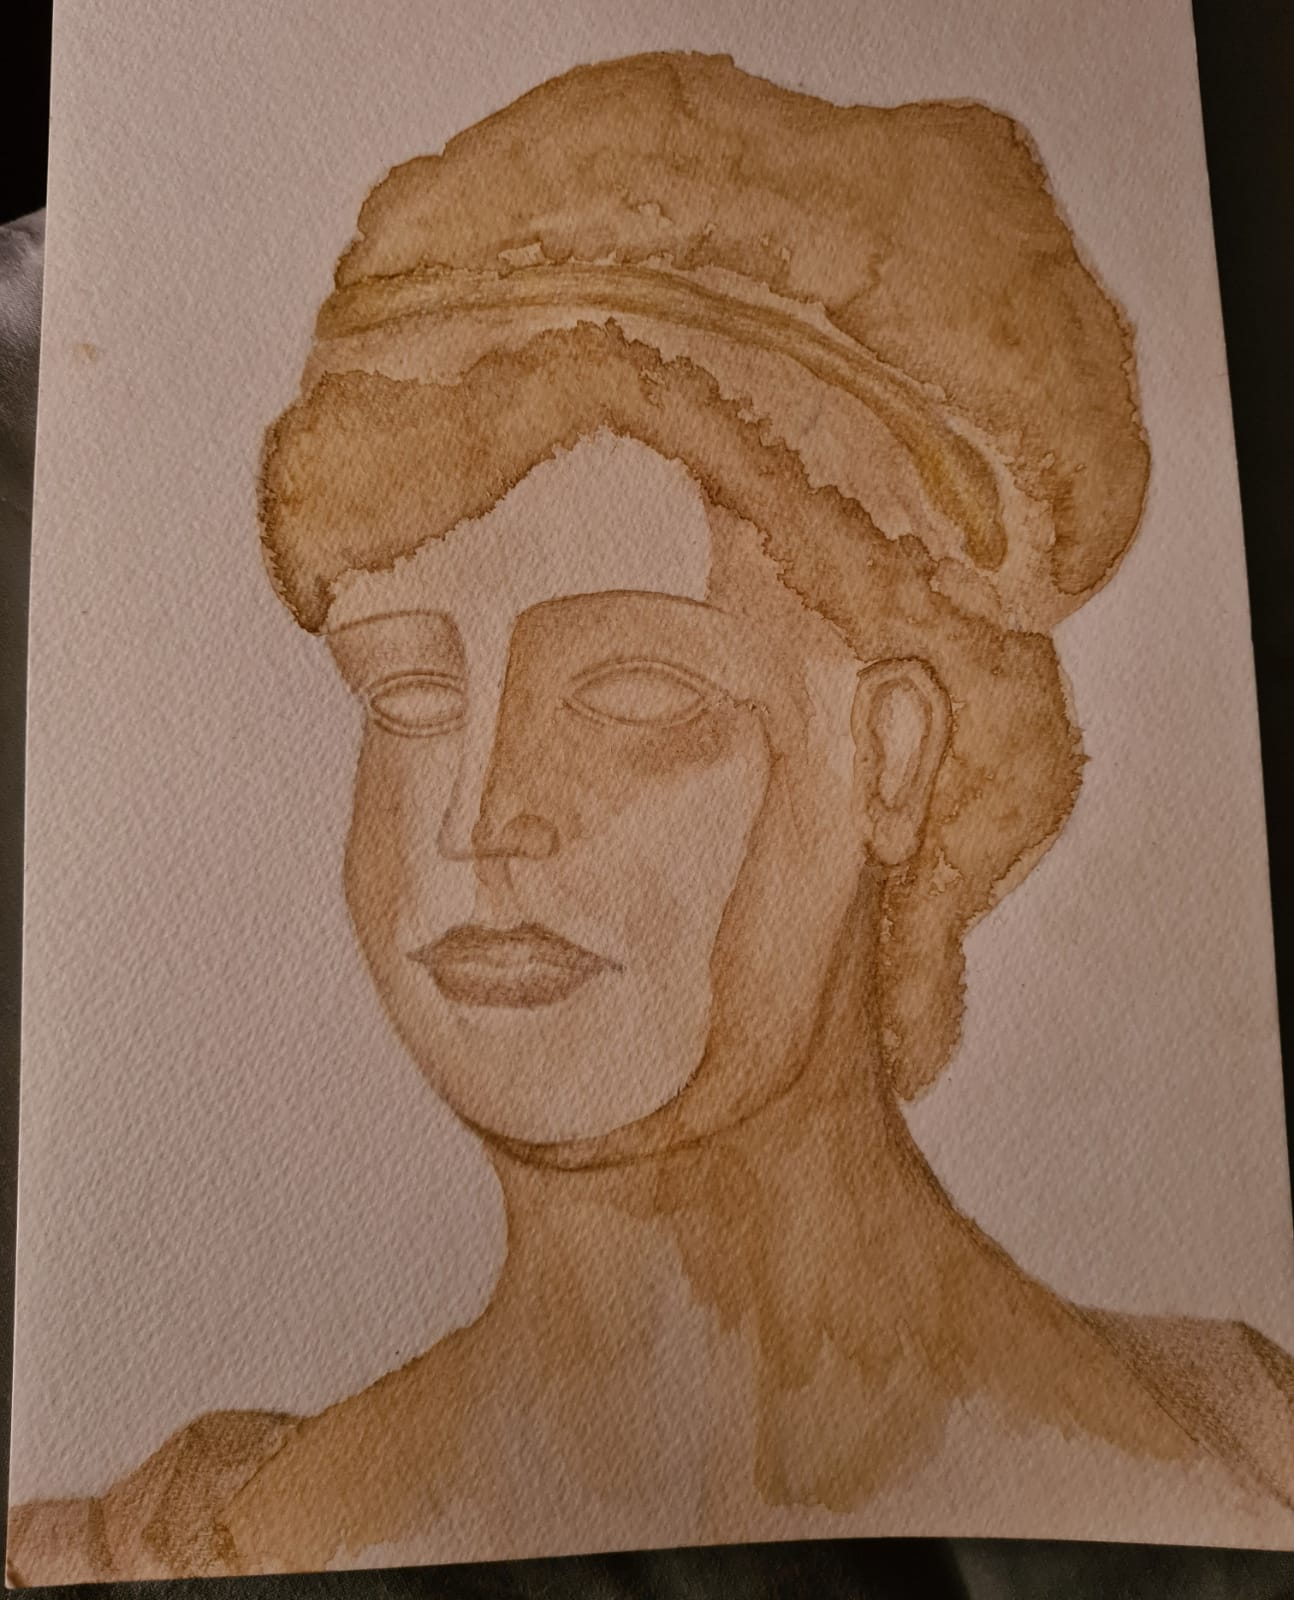 This is a picture of a grecian style portrait of a woman. It was painted using tea and coffee which has given it a different shades of light brown throughout the portrait.